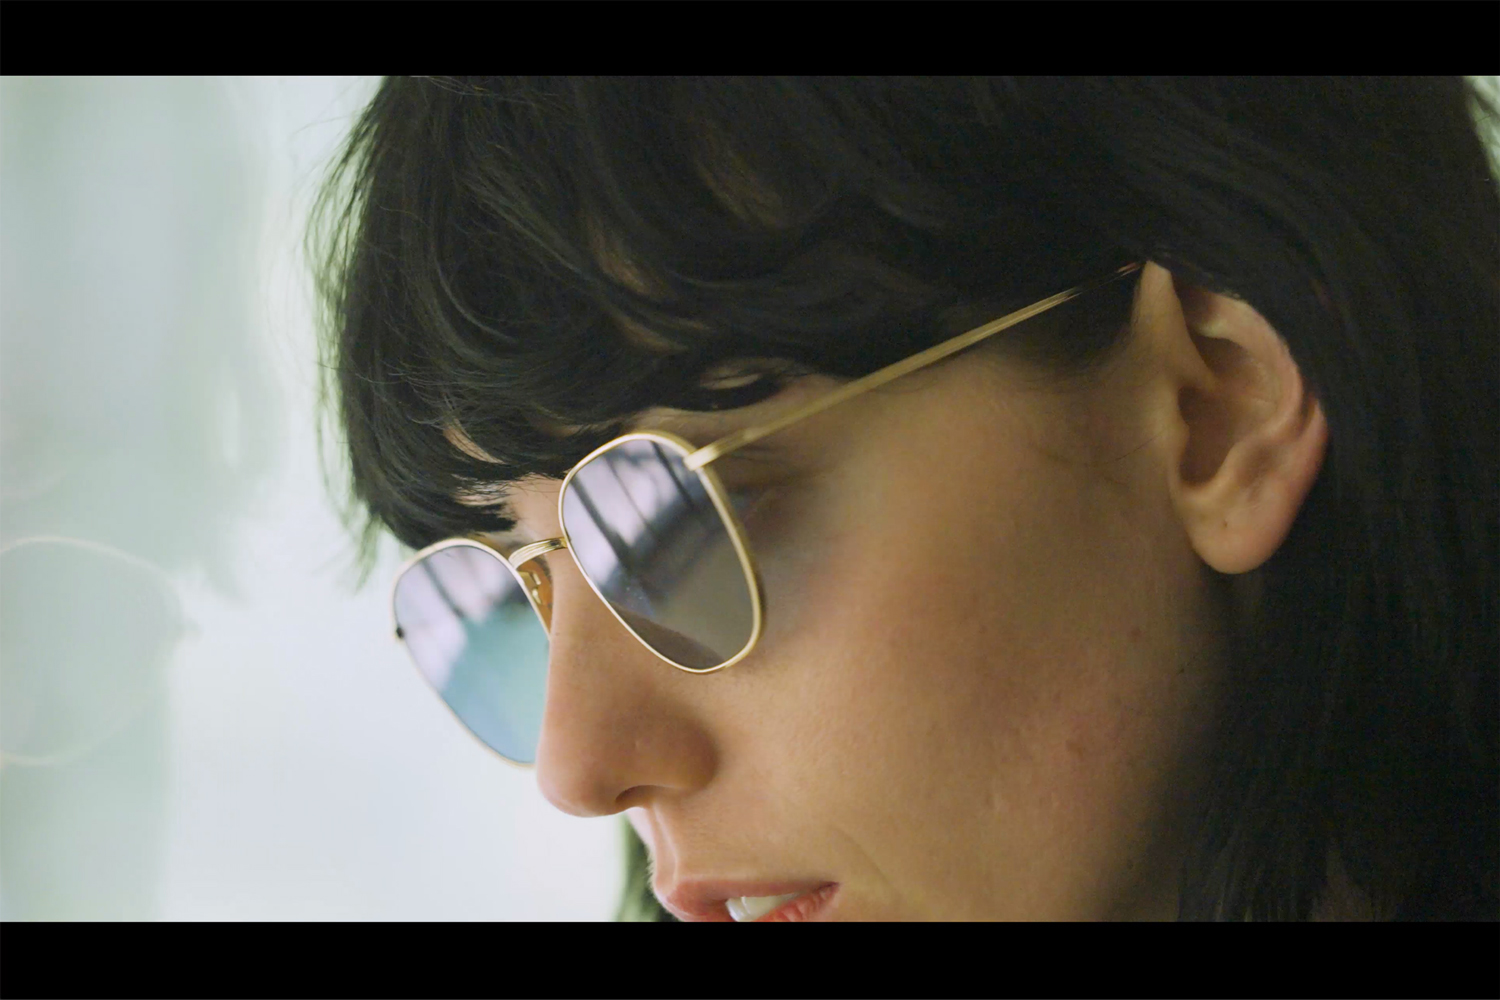 OLIVER PEOPLES THE ROW|Board Meeting 2 OV1230ST – 5035Q8|OLIVER PEOPLES